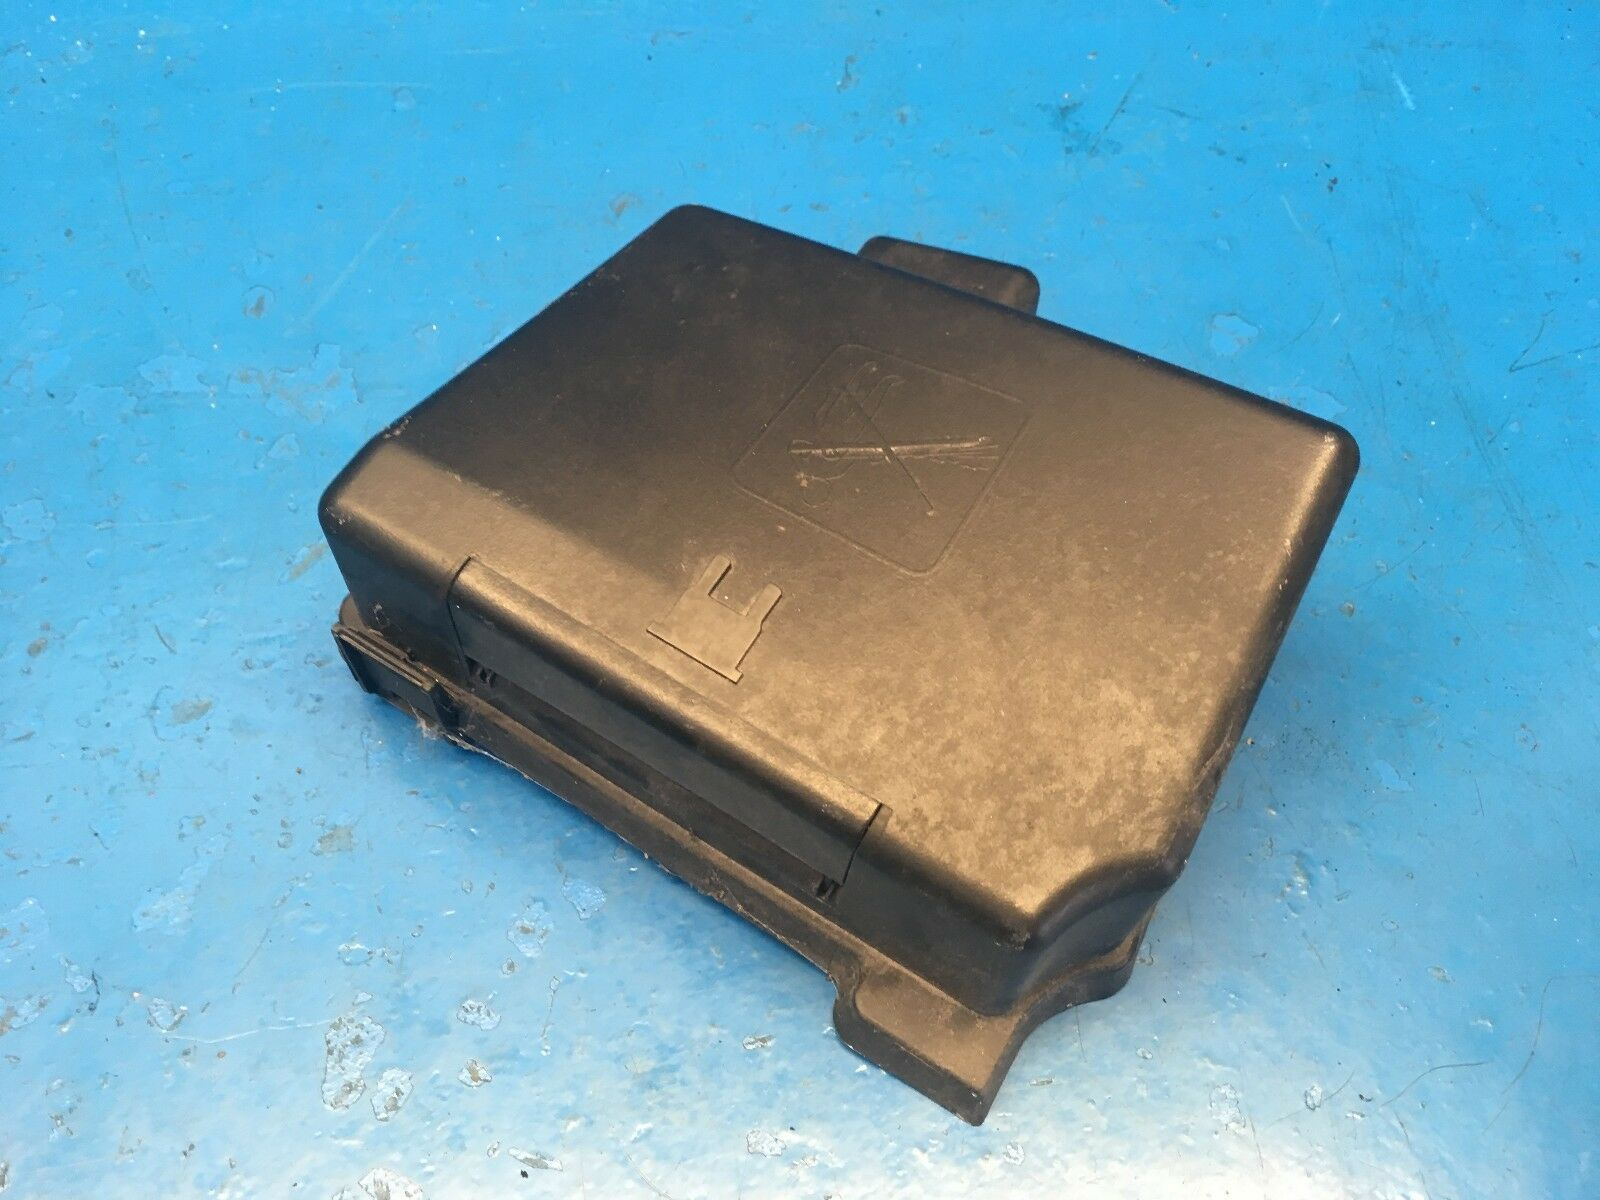 Peugeot 206 Fuse Box Lid 1 of 1Only 1 available ...